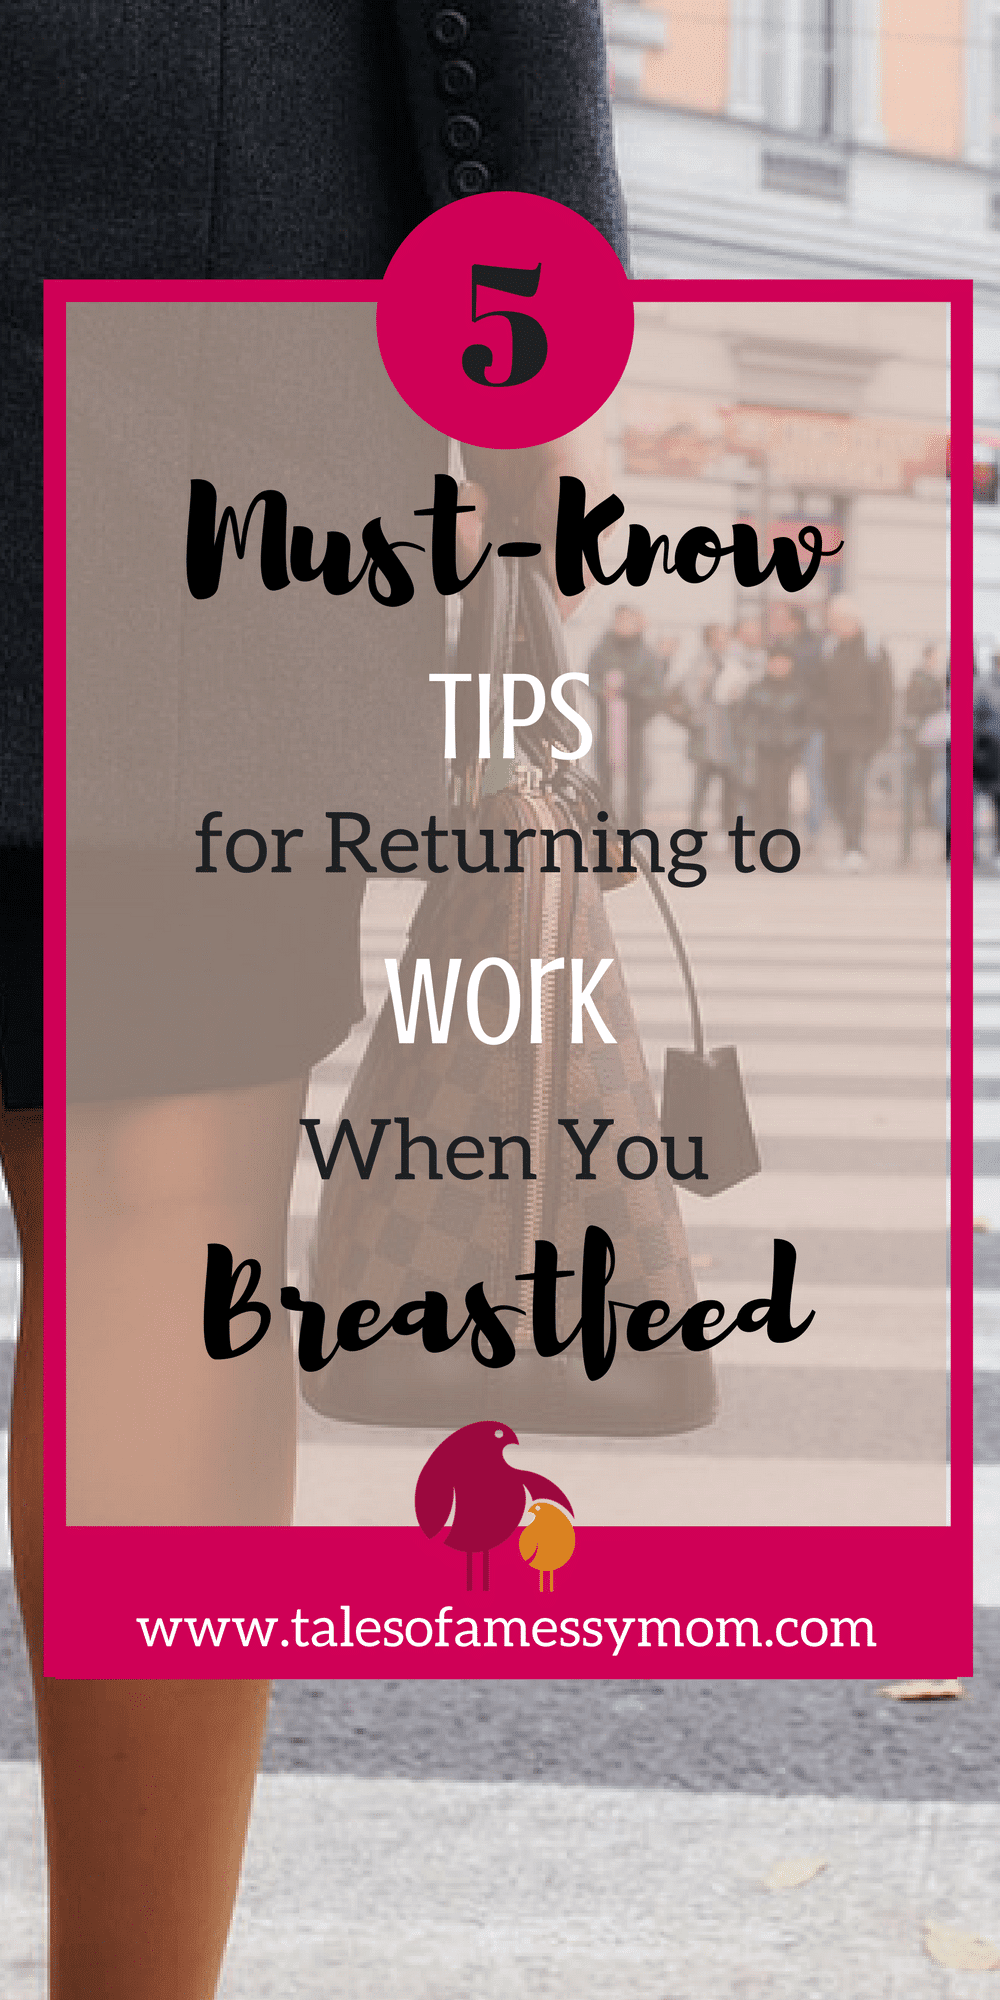 5 must-knows tips for returning to work for the breastfeeding mom. These tips will make your transition from maternity leave back to work much smoother! http://www.talesofamessymom.com